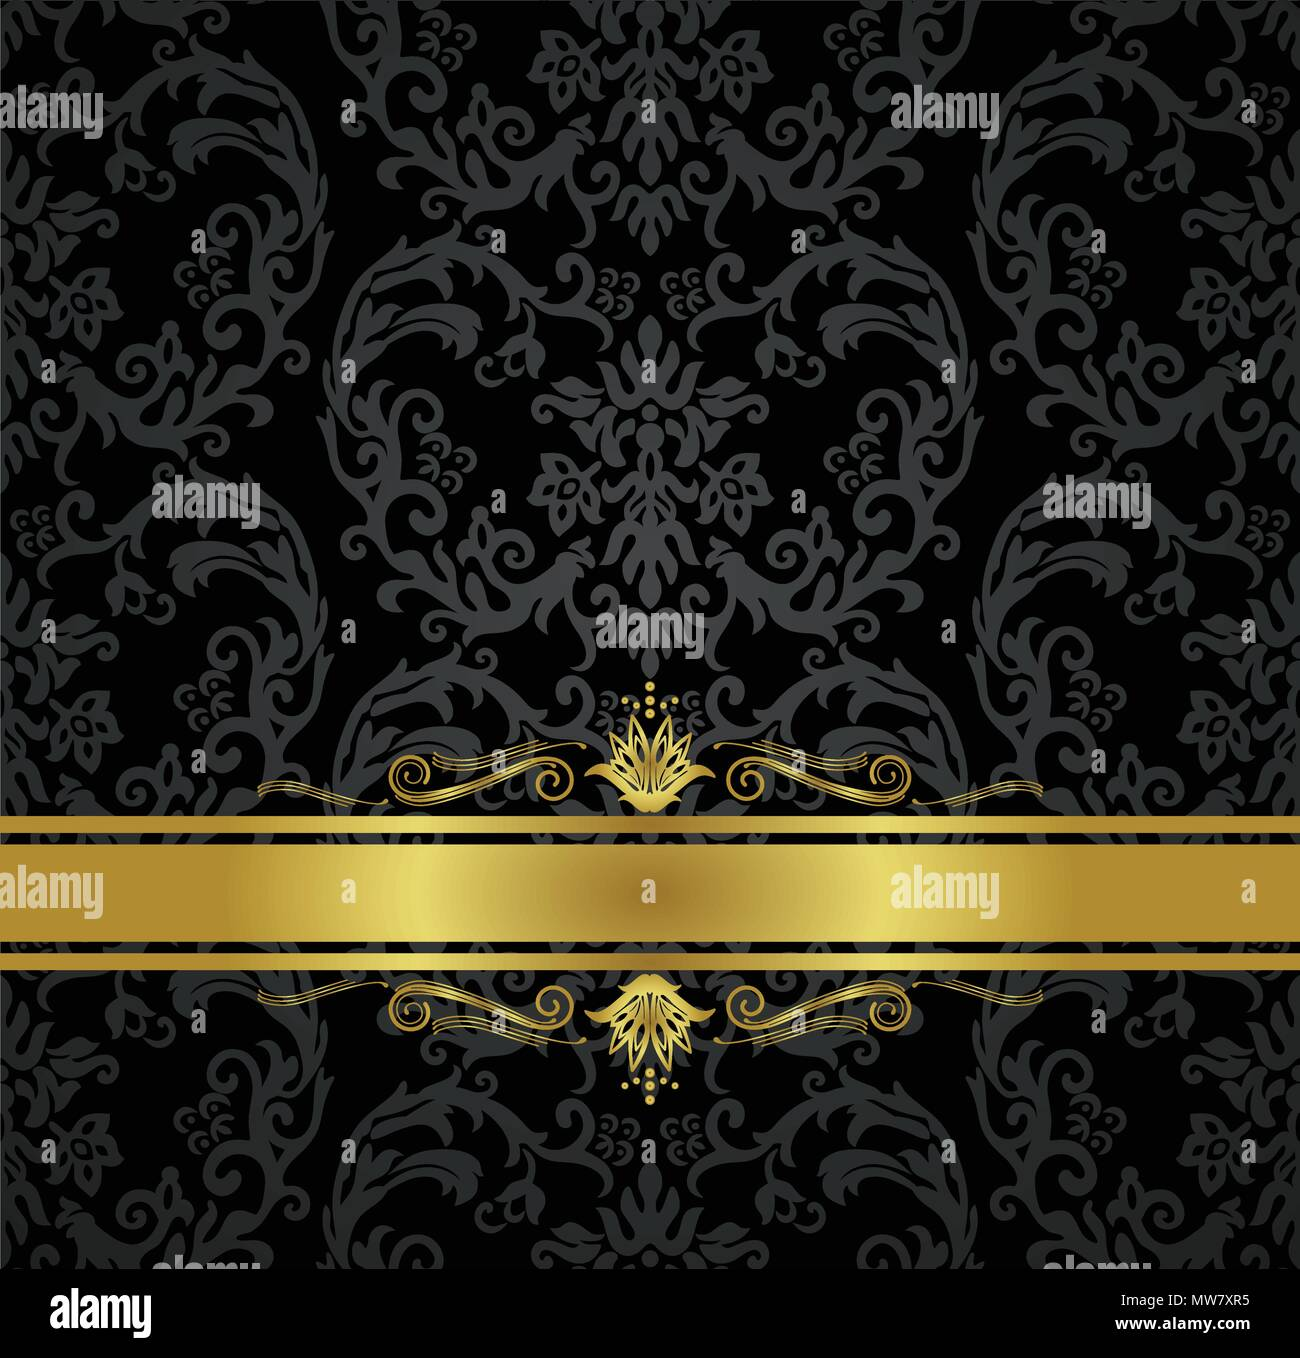 seamless black floral wallpaper pattern and gold ribbon with decorative swirls this image is a vector illustration MW7XR5